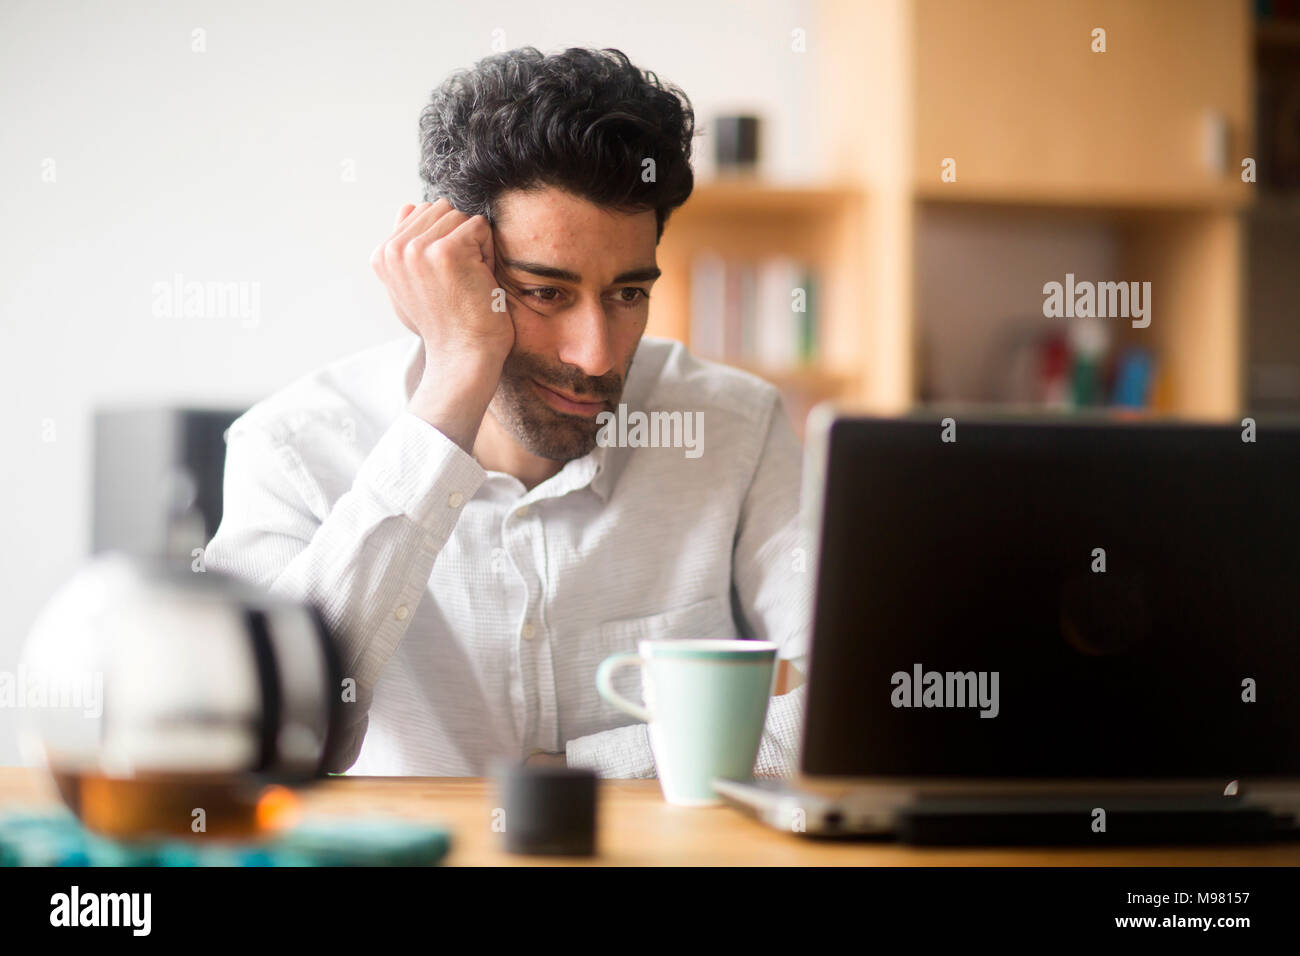 Portrait of businessman at desk looking at laptop - Stock Image